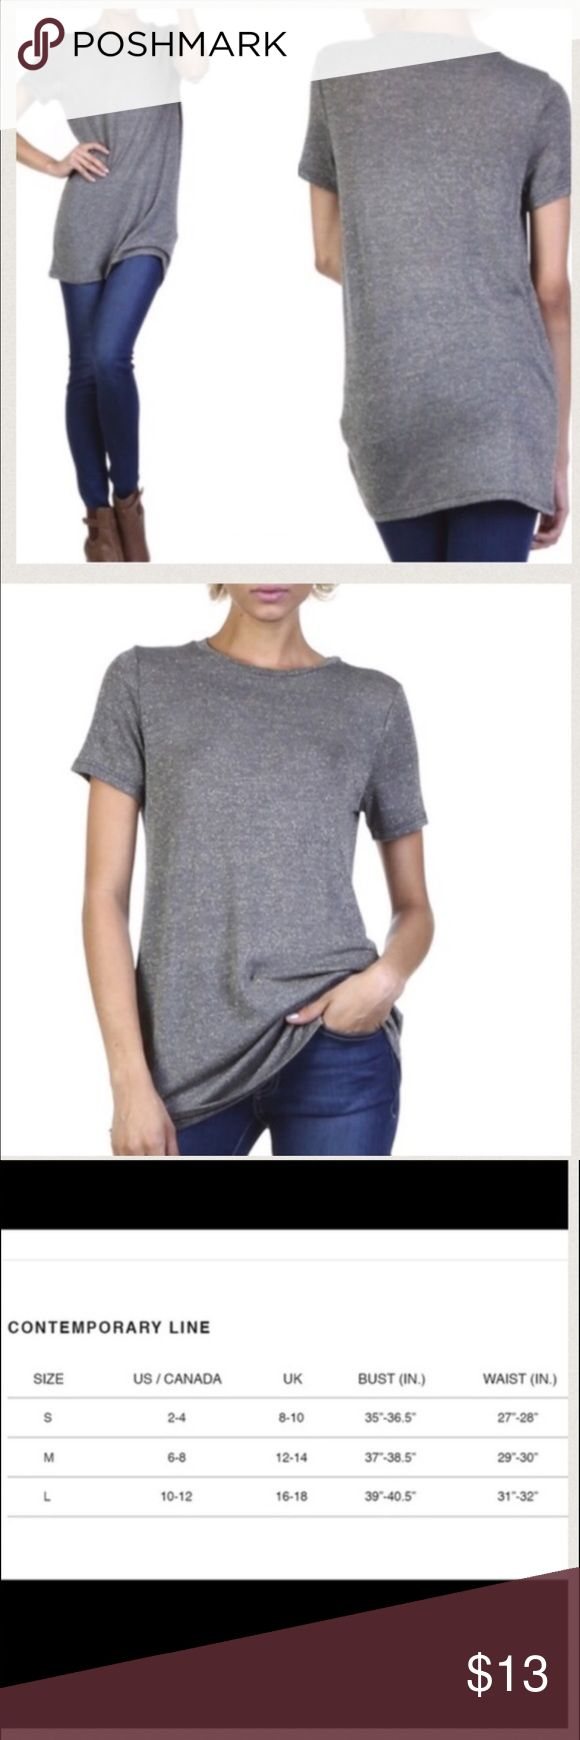 Long Metallic Tee Lightweight woven top, grey with gold glitter accents and longer silhouette.  🚫Trades ✅Price firm,Bundle to save on shipping April Spirit Tops Tunics